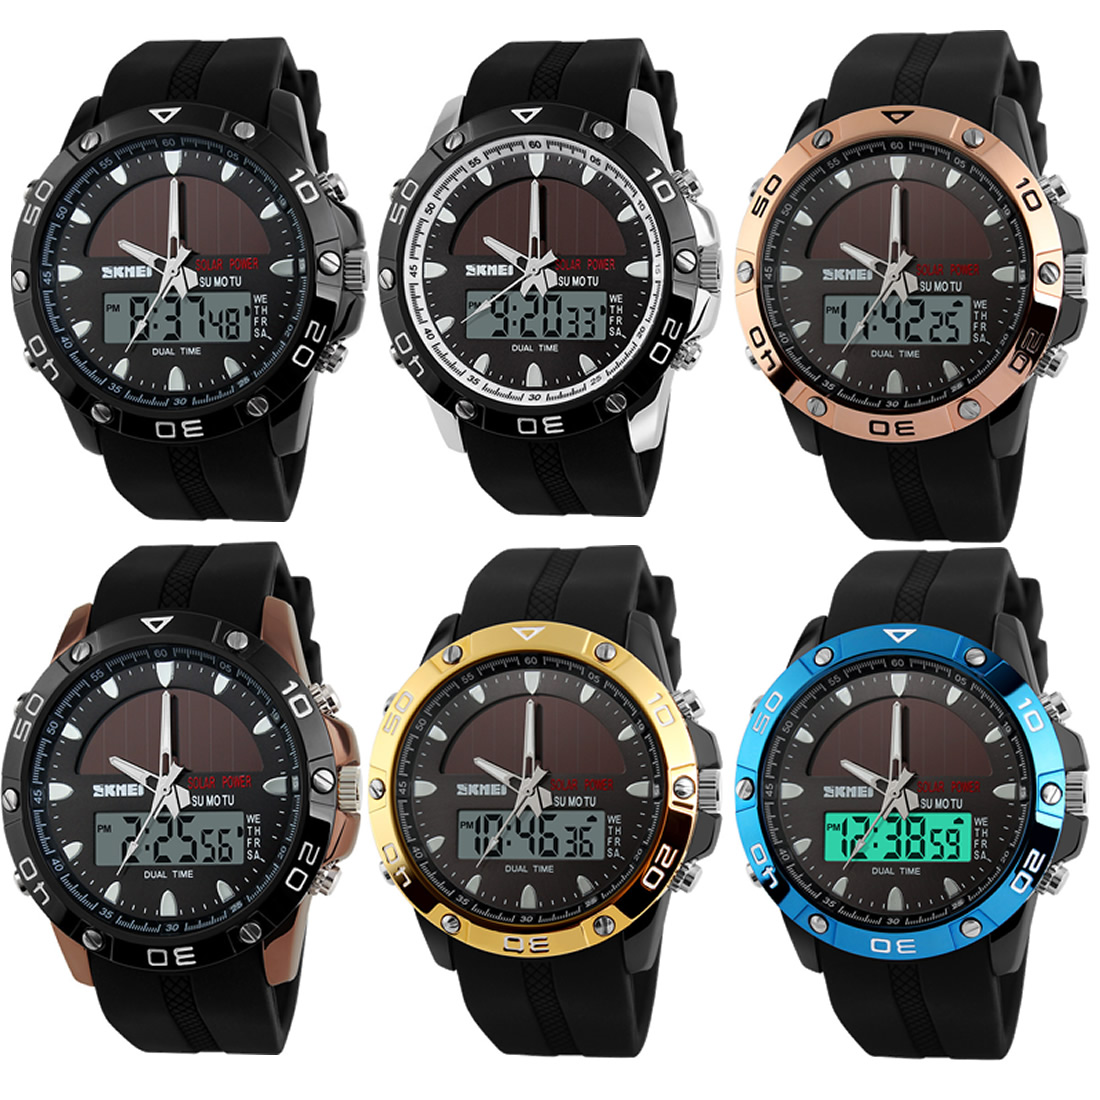 New silver electronic wristwatch outdoor dual time men sport watch silicone band adjustable LED dispaly waterproof limit edition